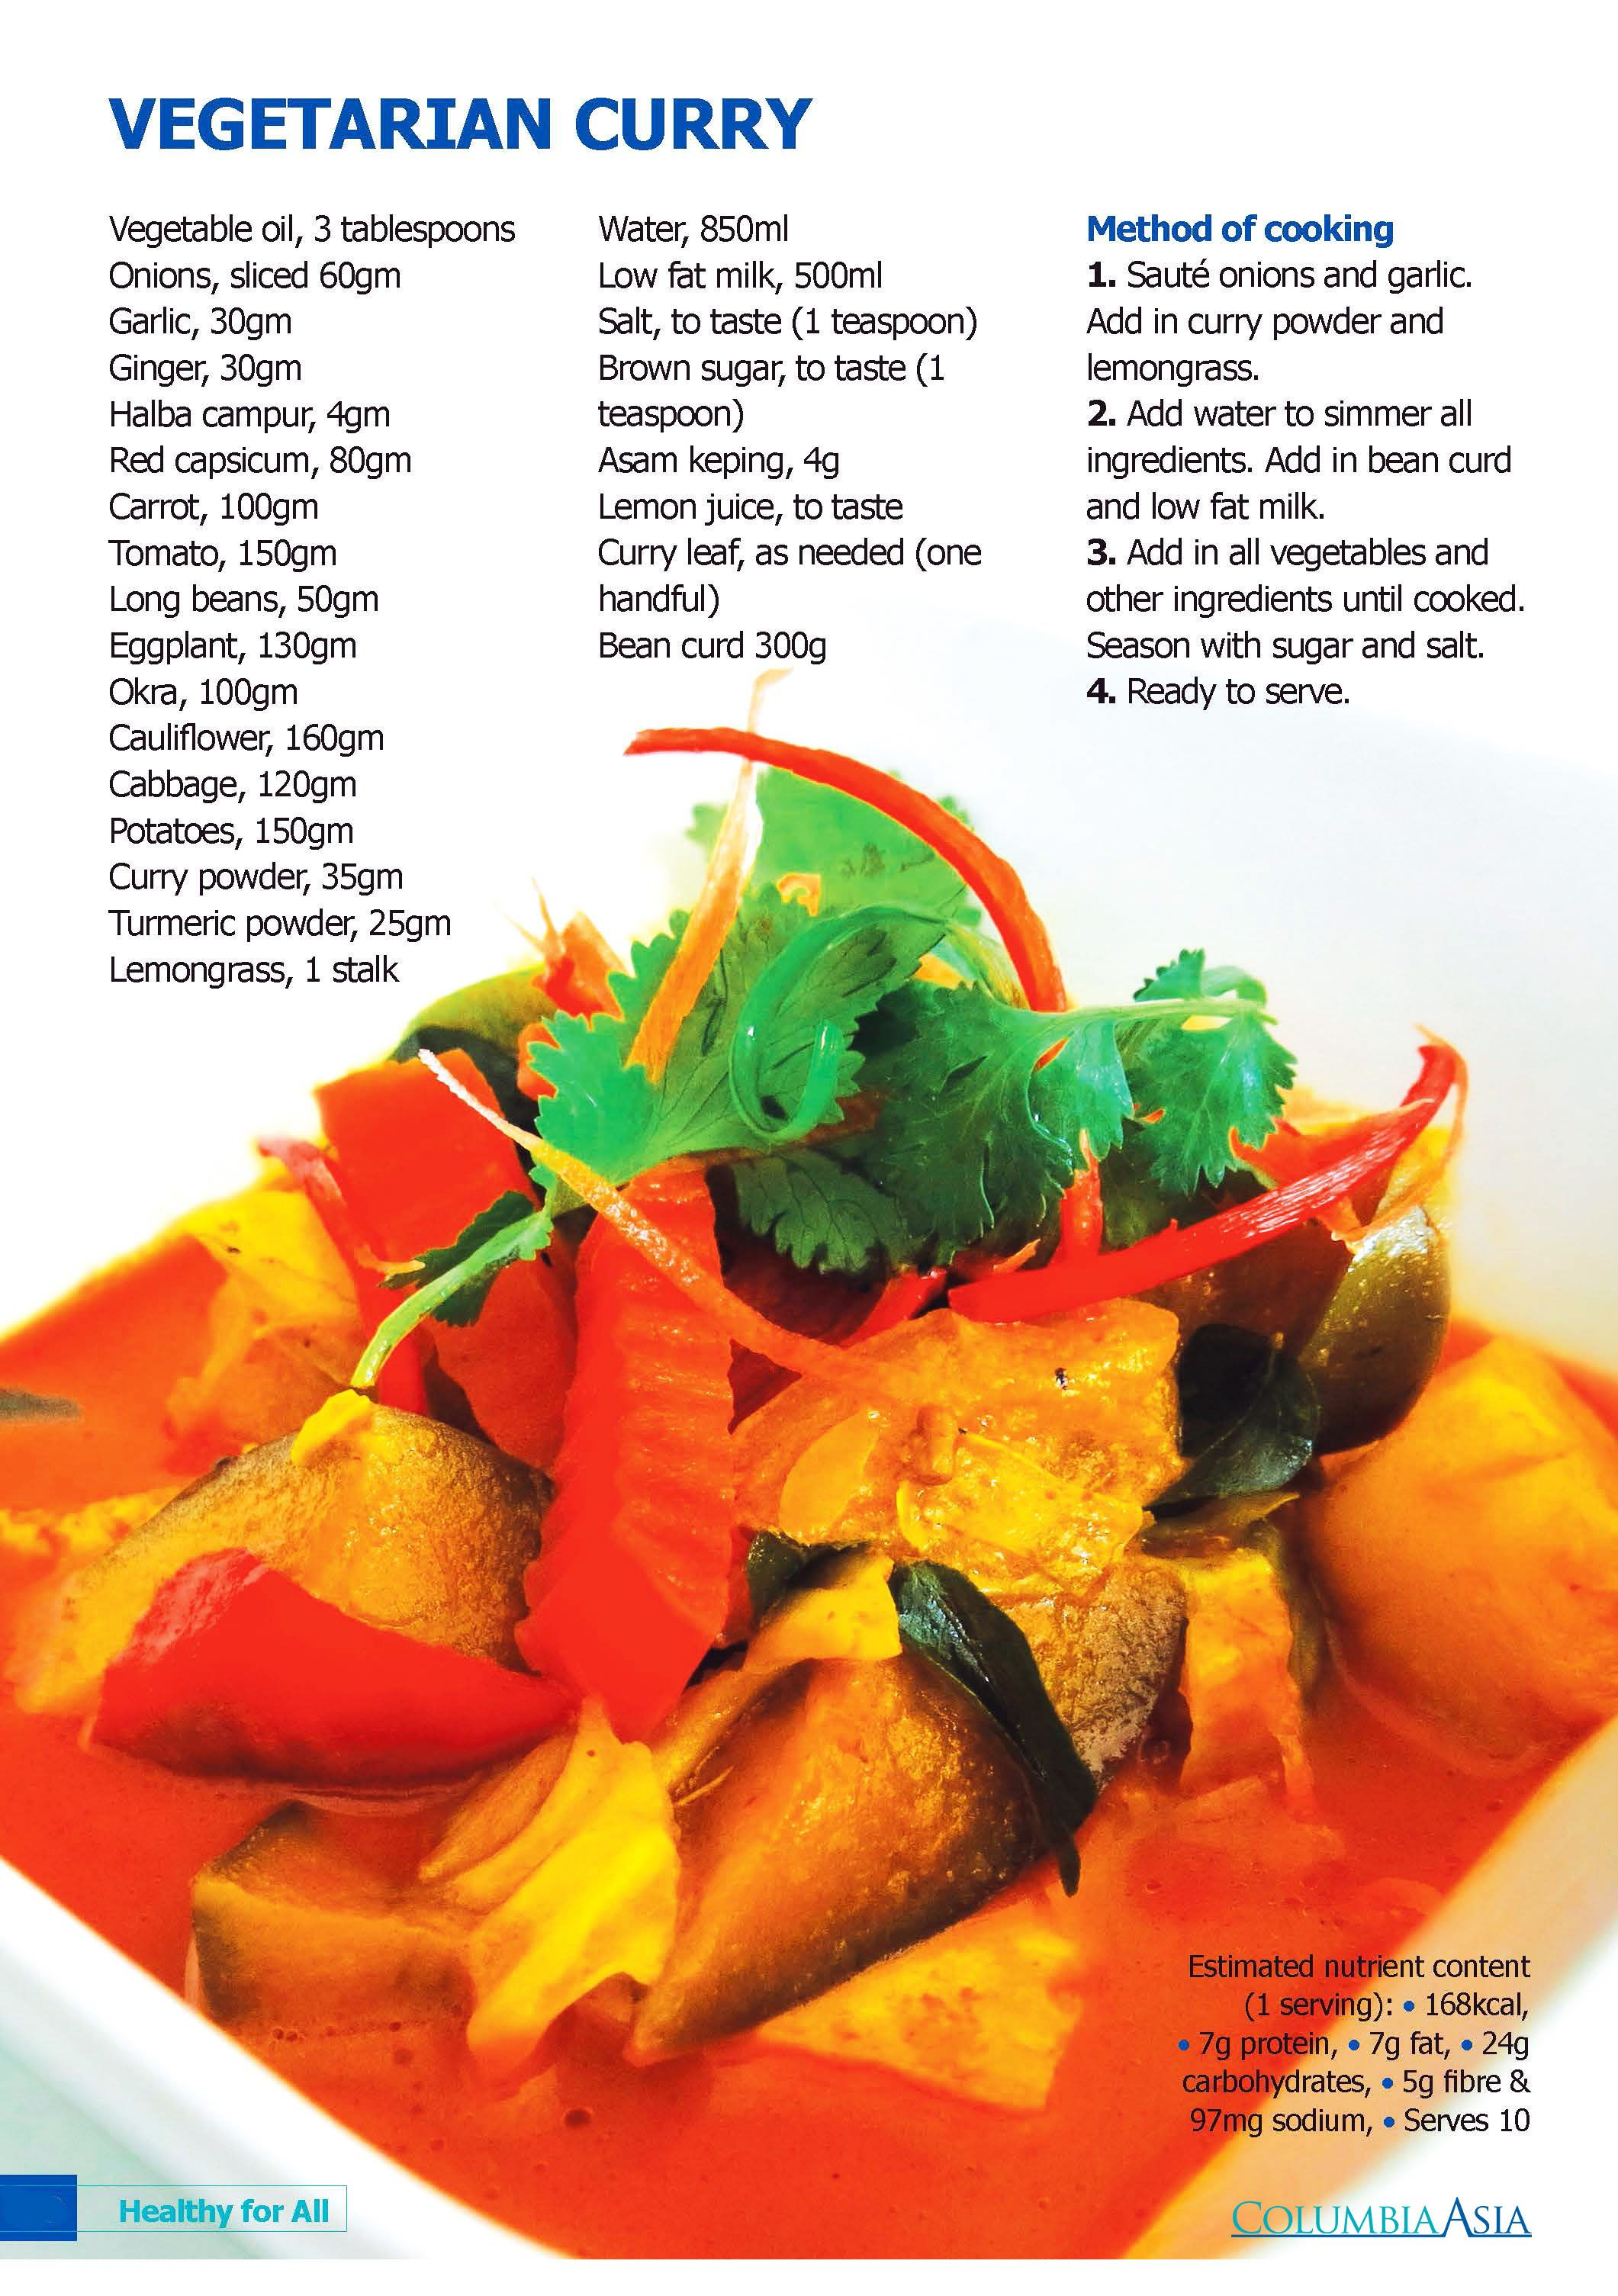 Obsessed with curry but worry about the calories? Try this healthy Vegetarian Curry recipe with just 168kcal.  #CADiabetesMC2015 #CafeColumbia #CADiabetes